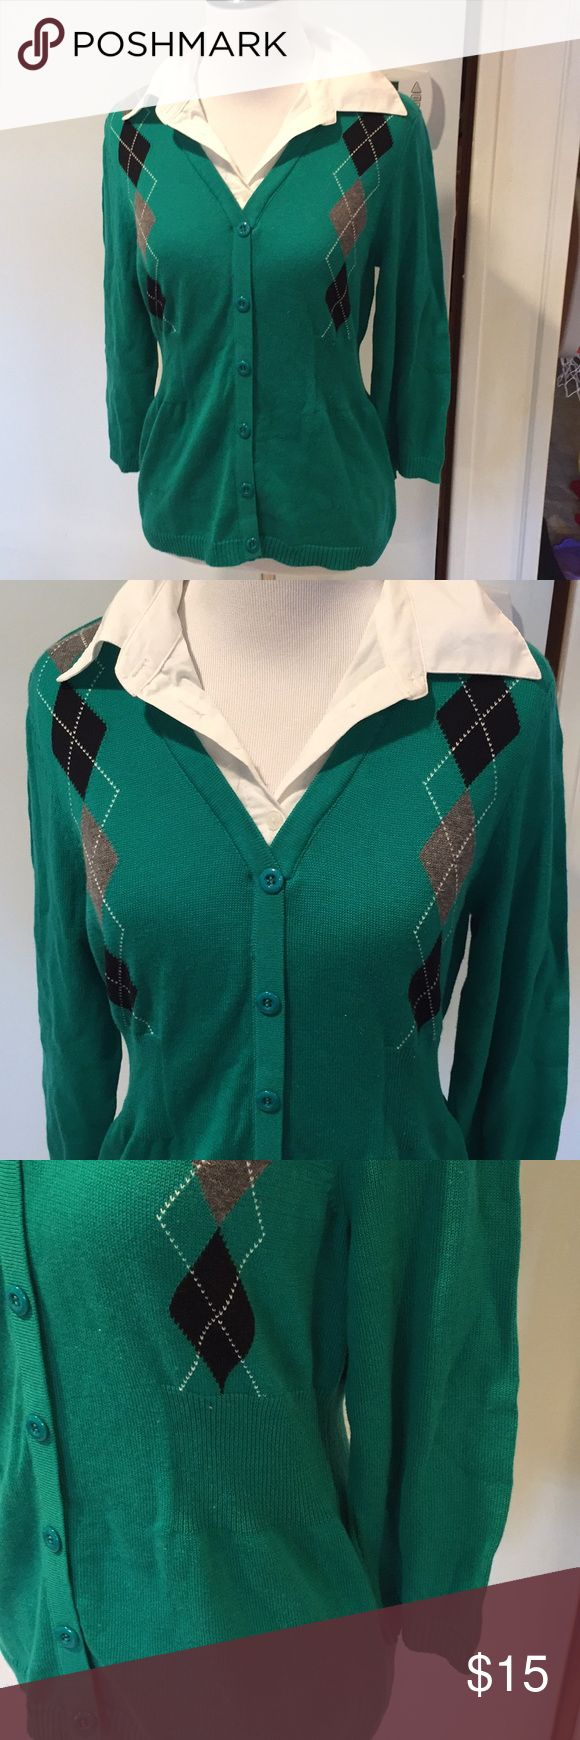 NWOT Preppy Career Top NWOT Preppy Career Top. Button down Cardigan with Sewn In White Button Down Shirt inside. Side and back sweater paneling define waist. Pretty color makes this easy work look!! Elementz Tops